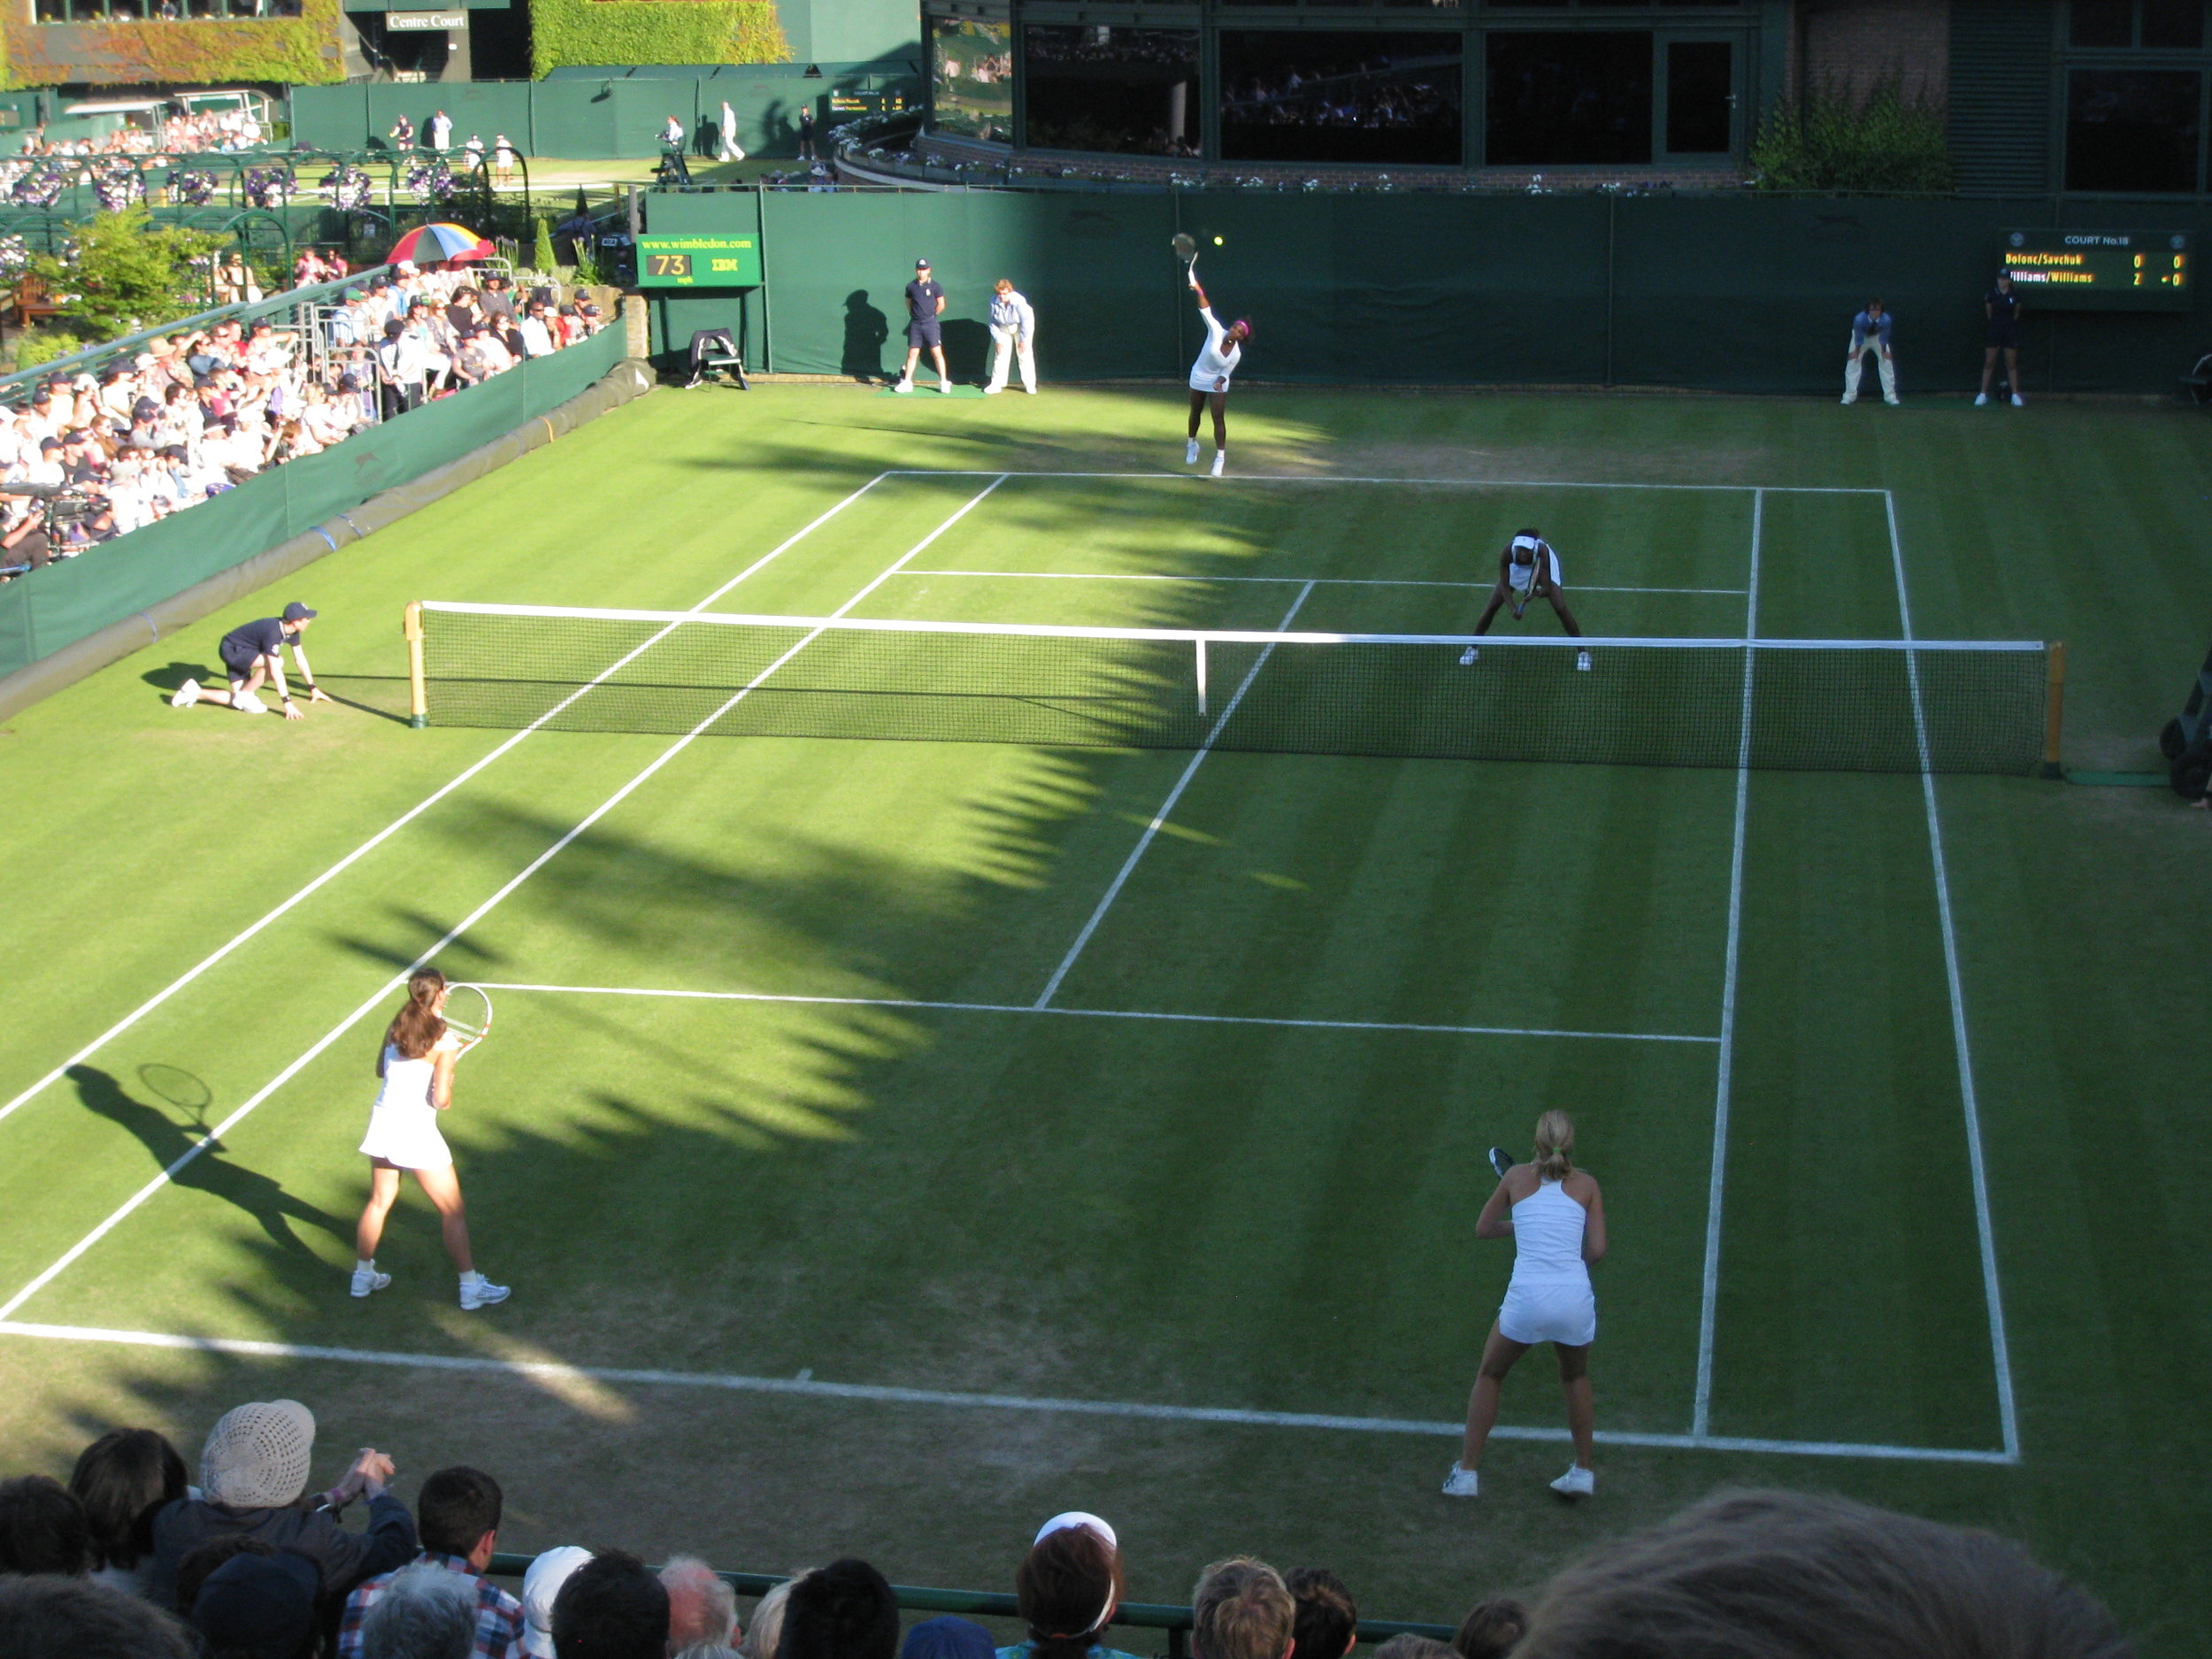 Watch Tennis - See some of the best players in the world on the best courts in the world, up close and personal!(Picture: Williams Sisters playing doubles on court 18)